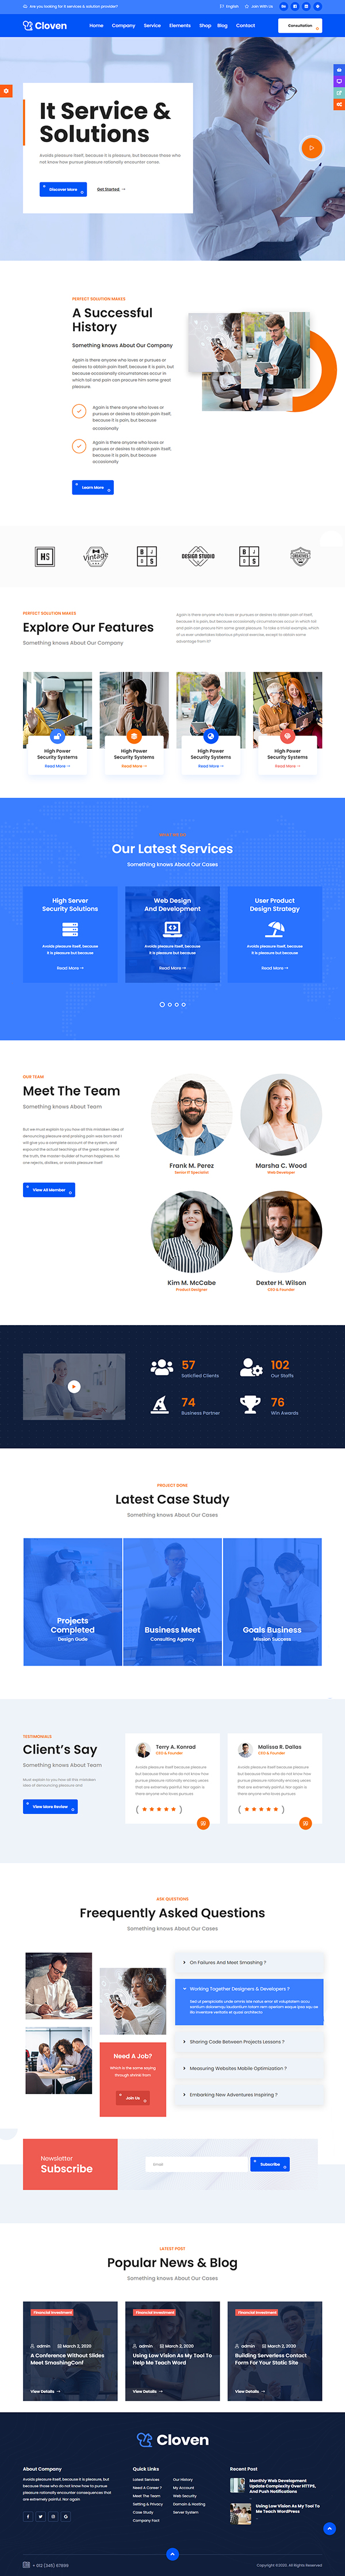 Cloven - IT Solutions Services Company WordPress Theme